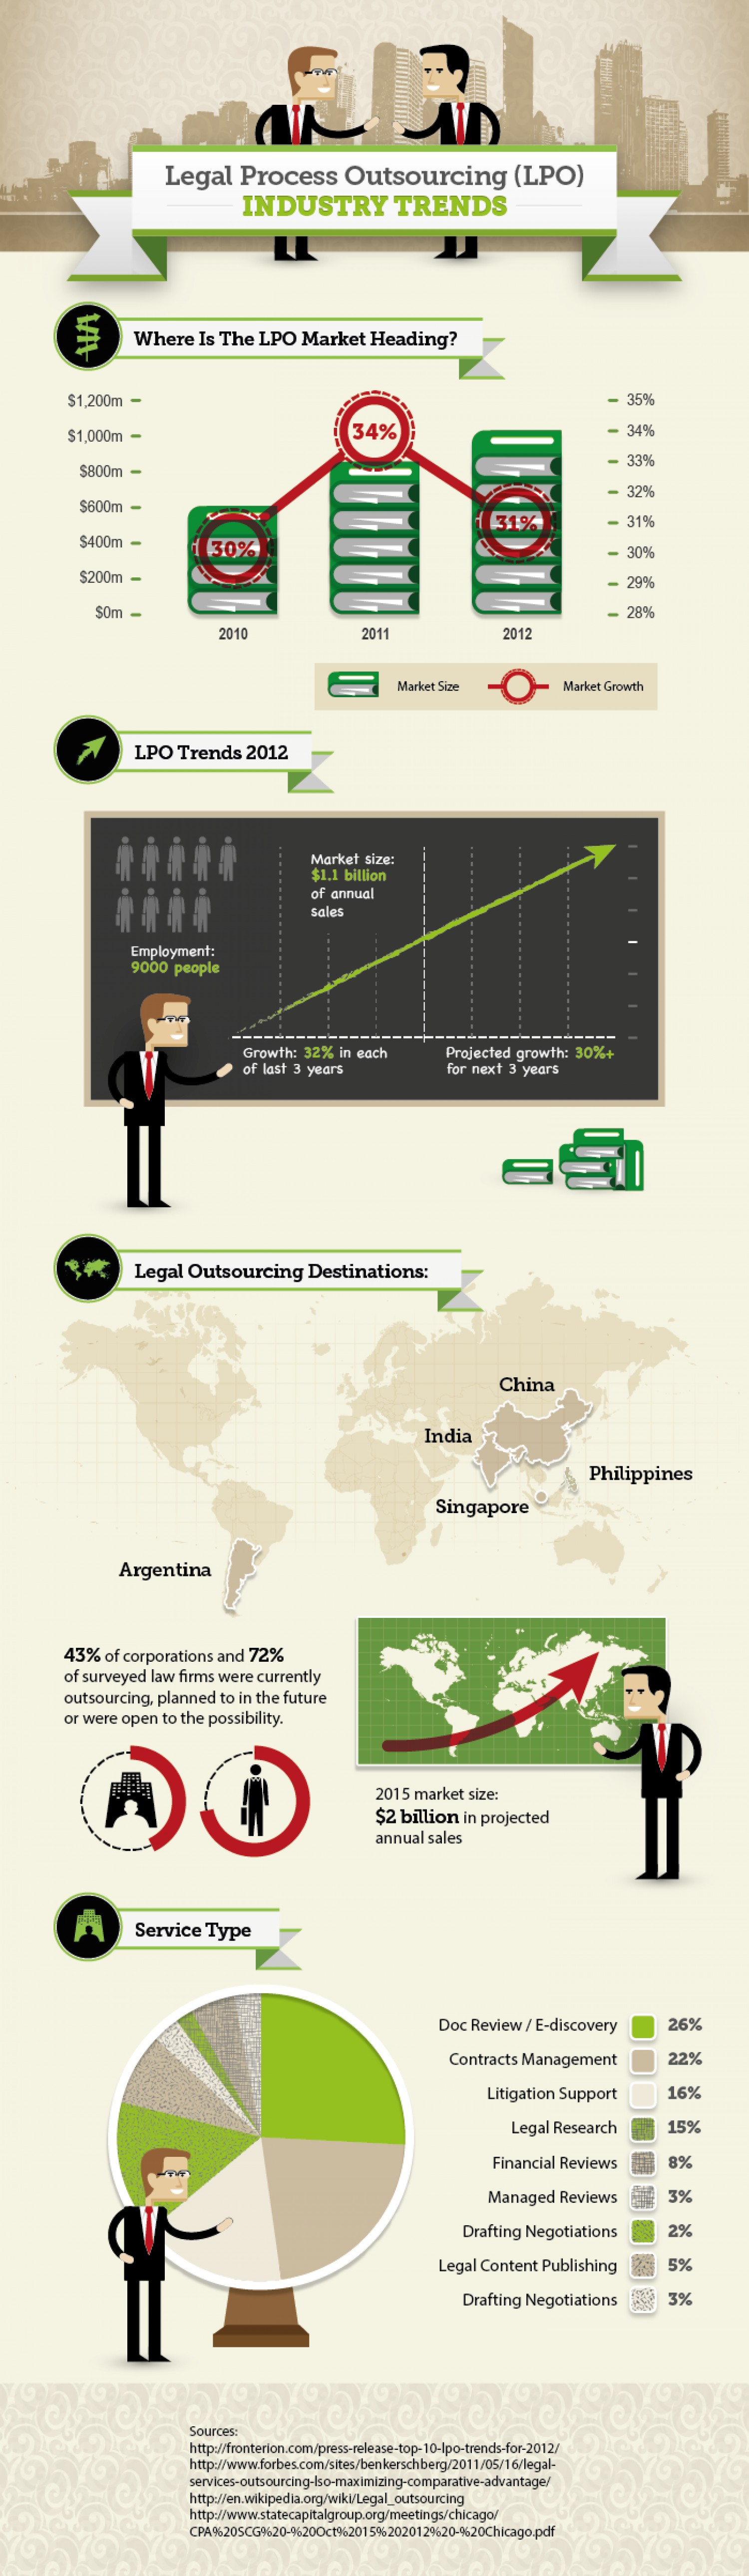 Legal process outsourcing trends